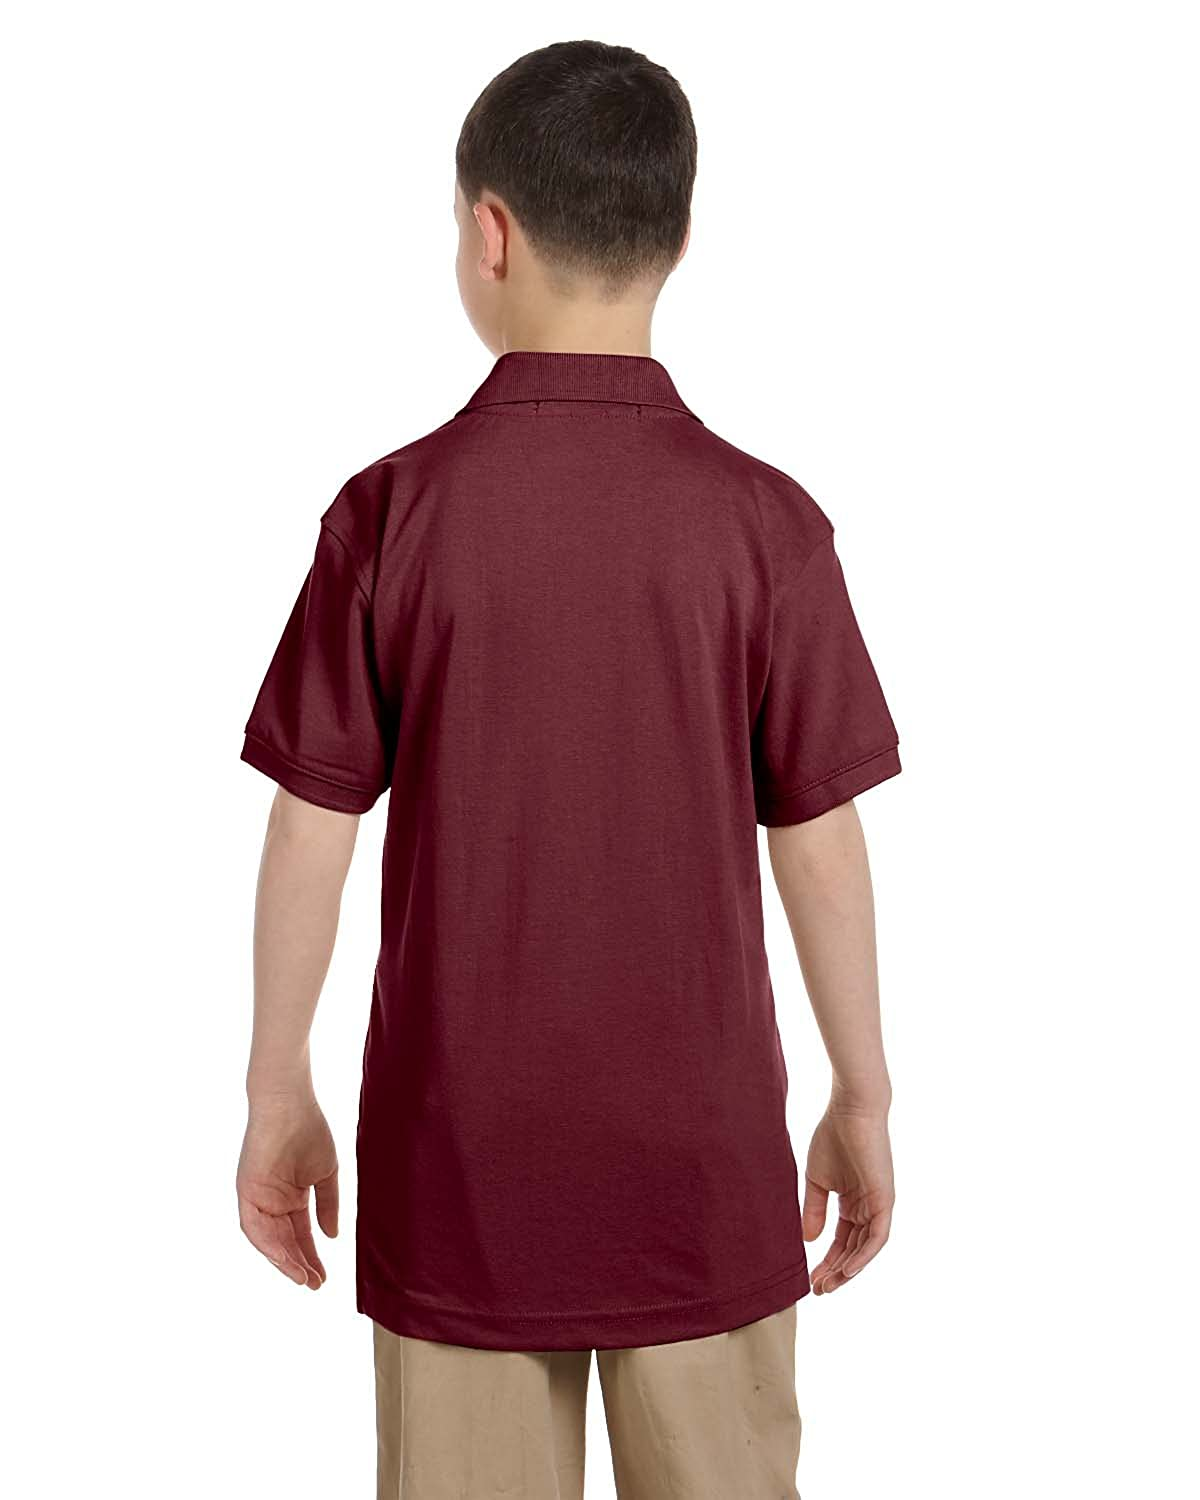 Harriton Youth 5.6 oz M Easy Blend Polo WINE